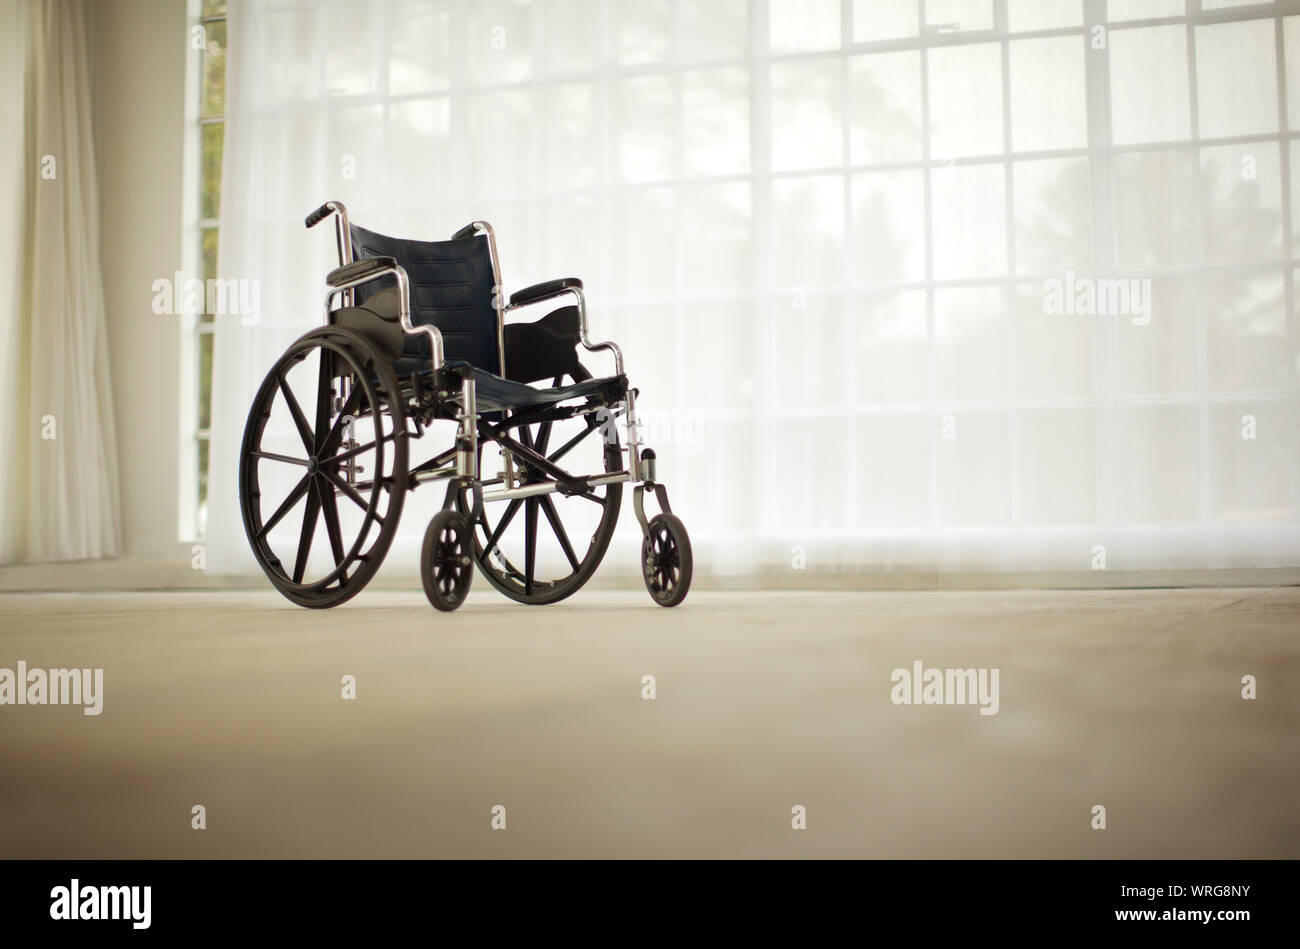 Wheelchair sitting in an empty room. Stock Photo